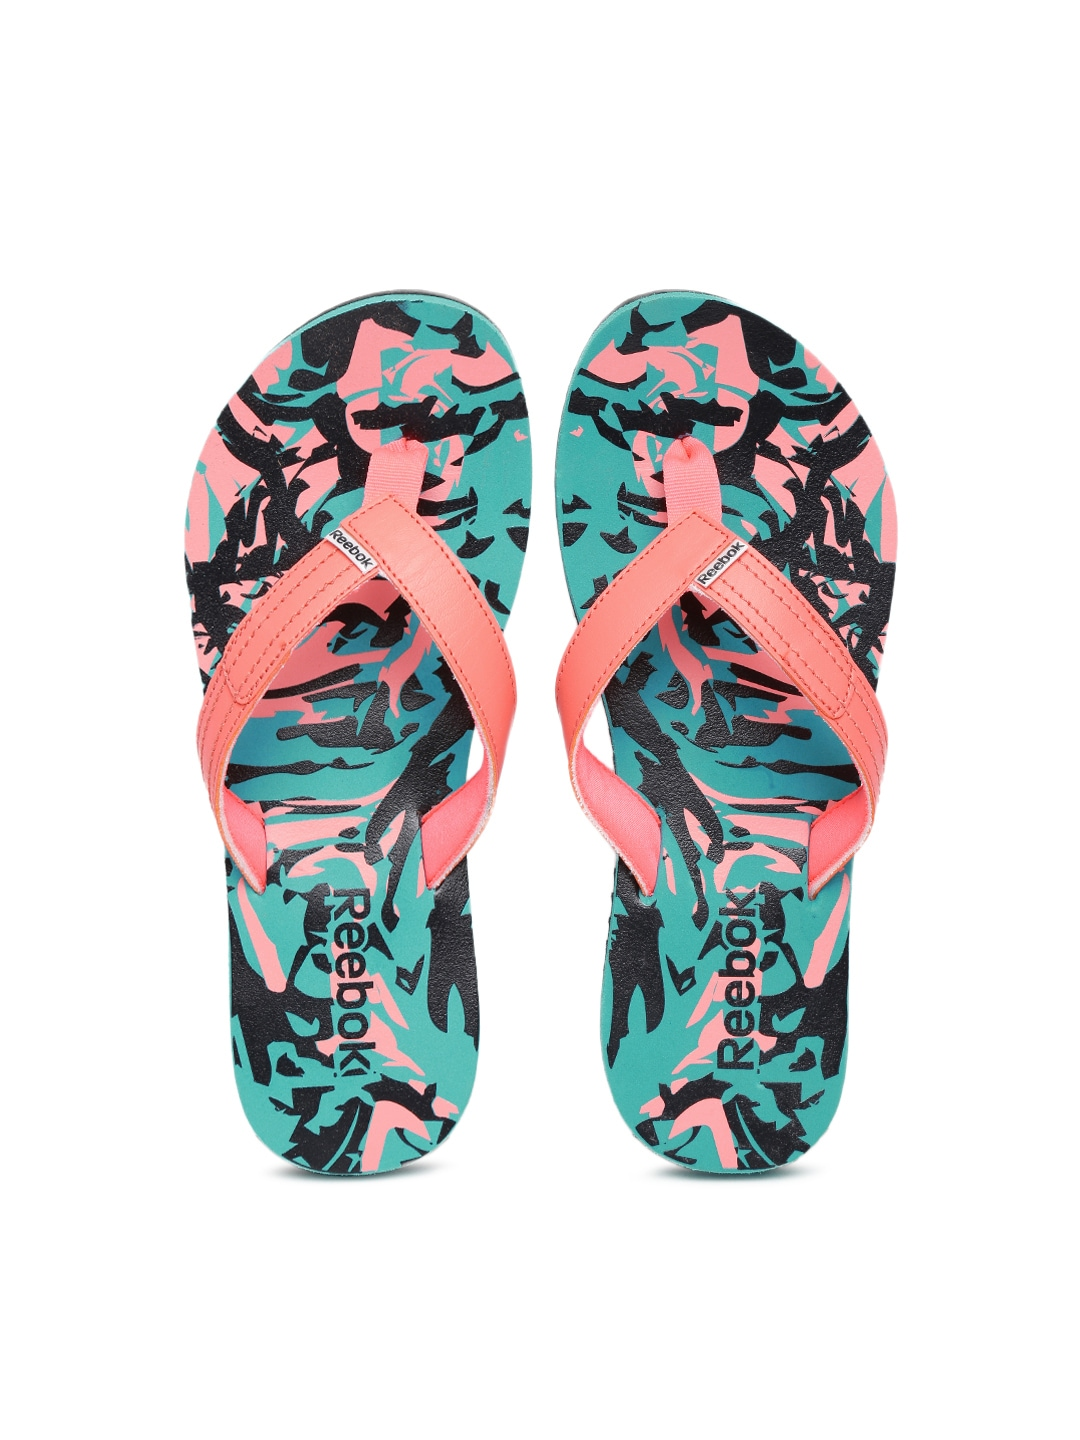 c2286ef7d109 Reebok v62293 Women Coral Pink And Green Marble Lp Flip Flops- Price in  India